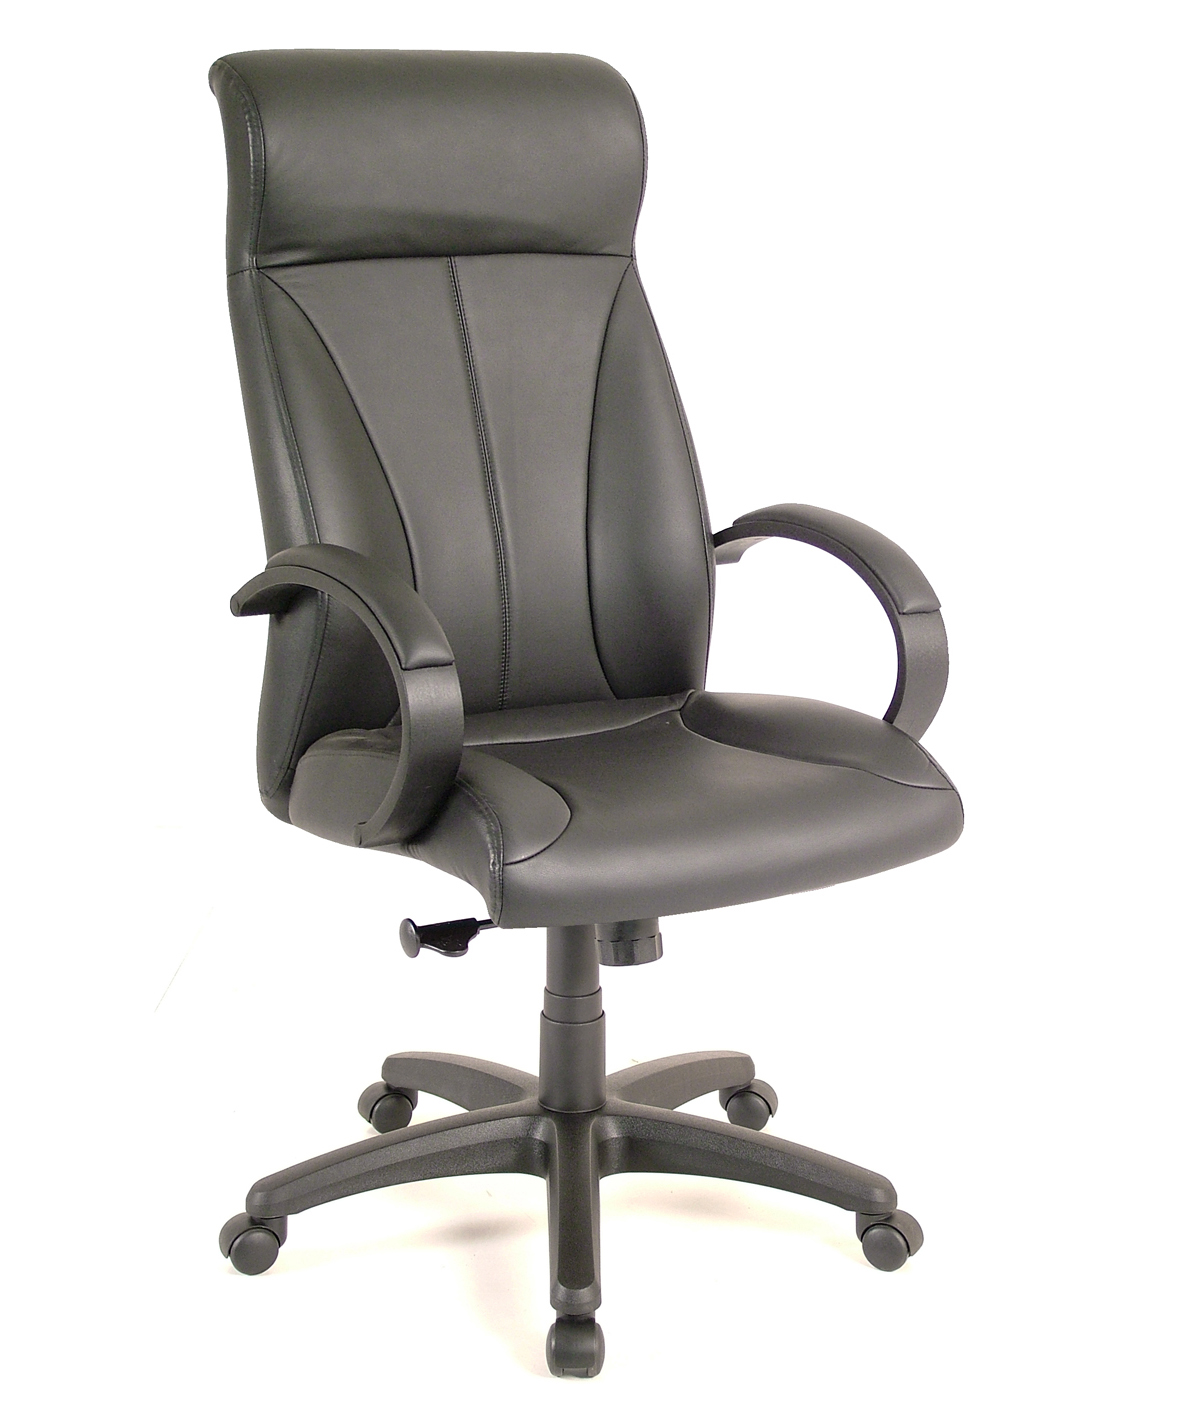 Executive / Leather Chair